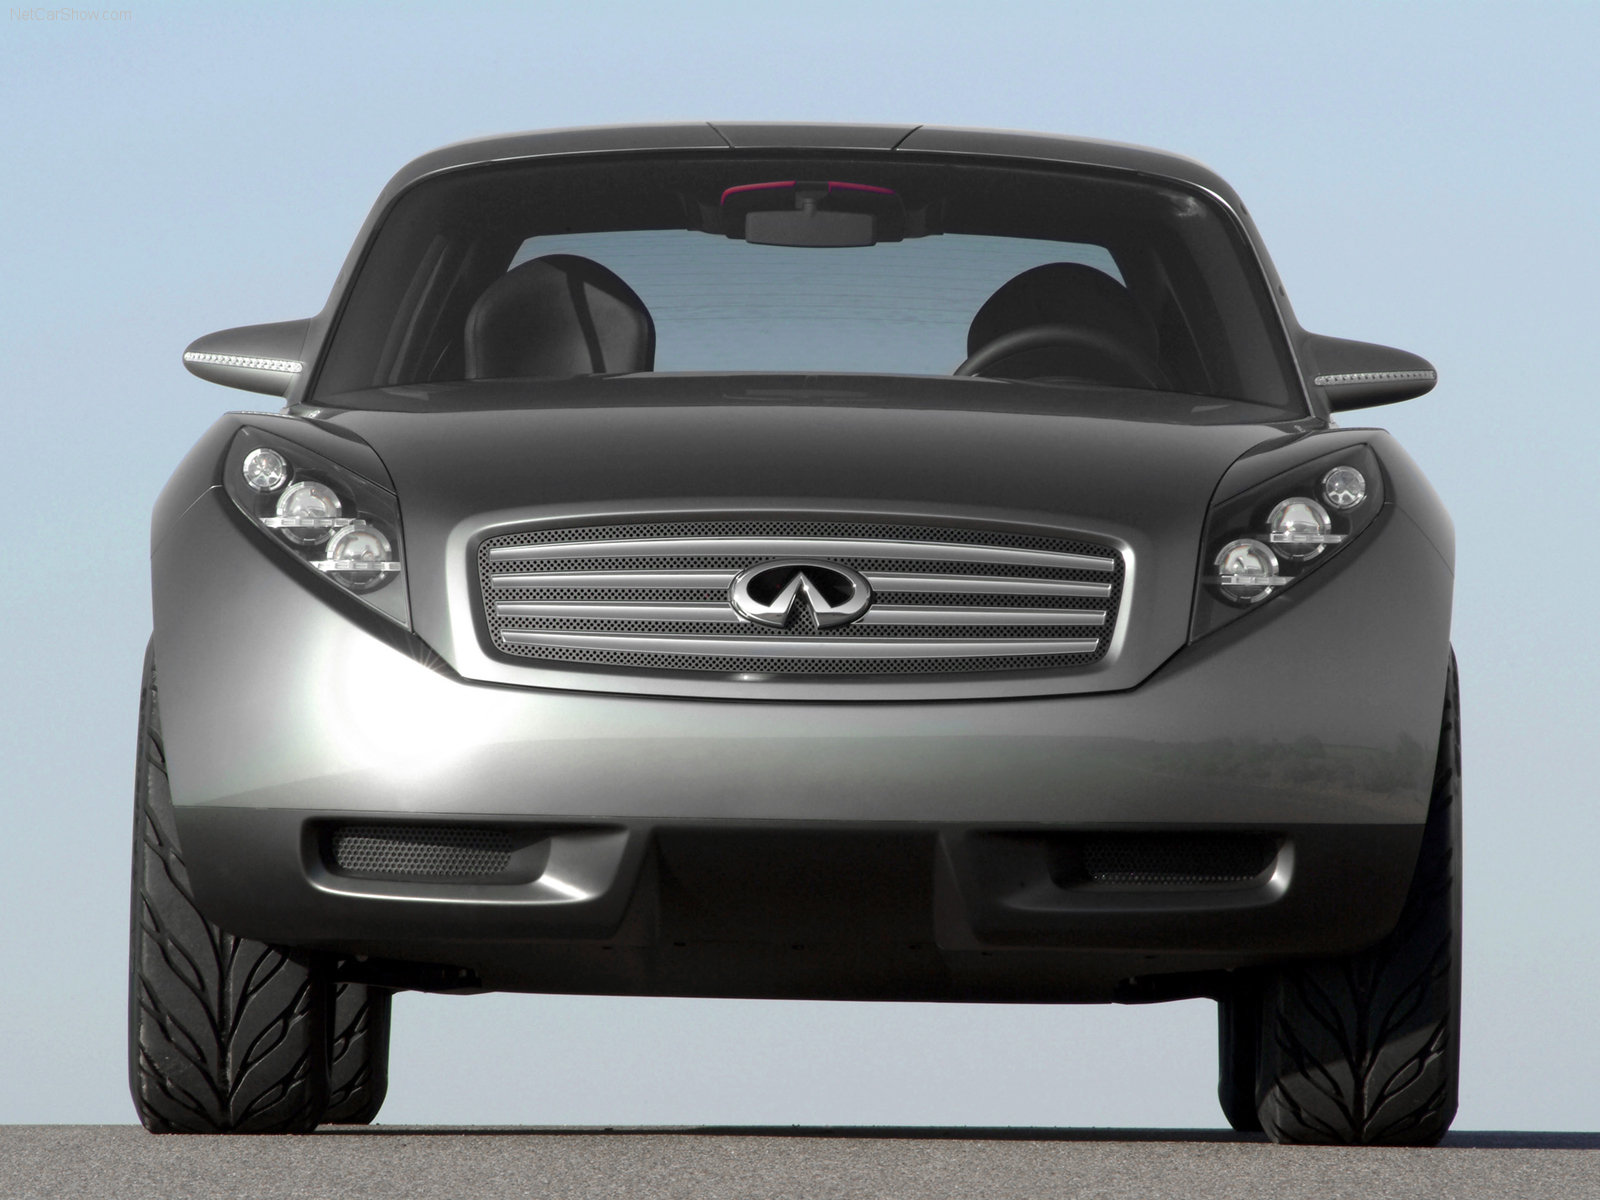 Infiniti-Triant_Concept_2003_1600x1200_wallpaper_06